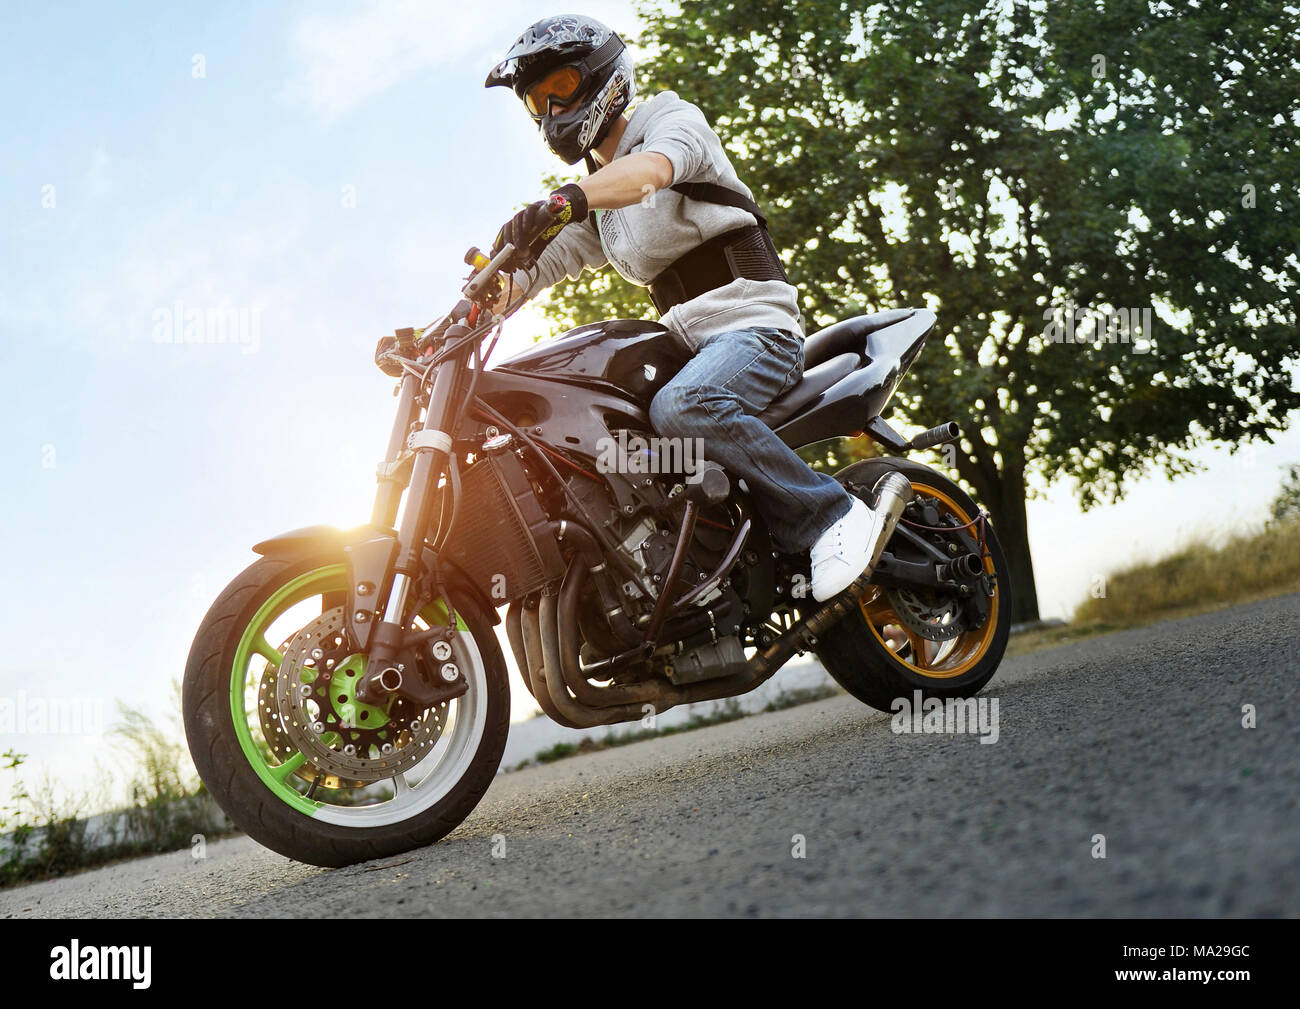 Ivano-Frankivsk, Ukraine - 28 August 2015 : Photo of biker is posing sitting on his colorful sport motorcycle on summer street, filled with shine of sunset. Man wearing protective helmet for bikers. - Stock Image